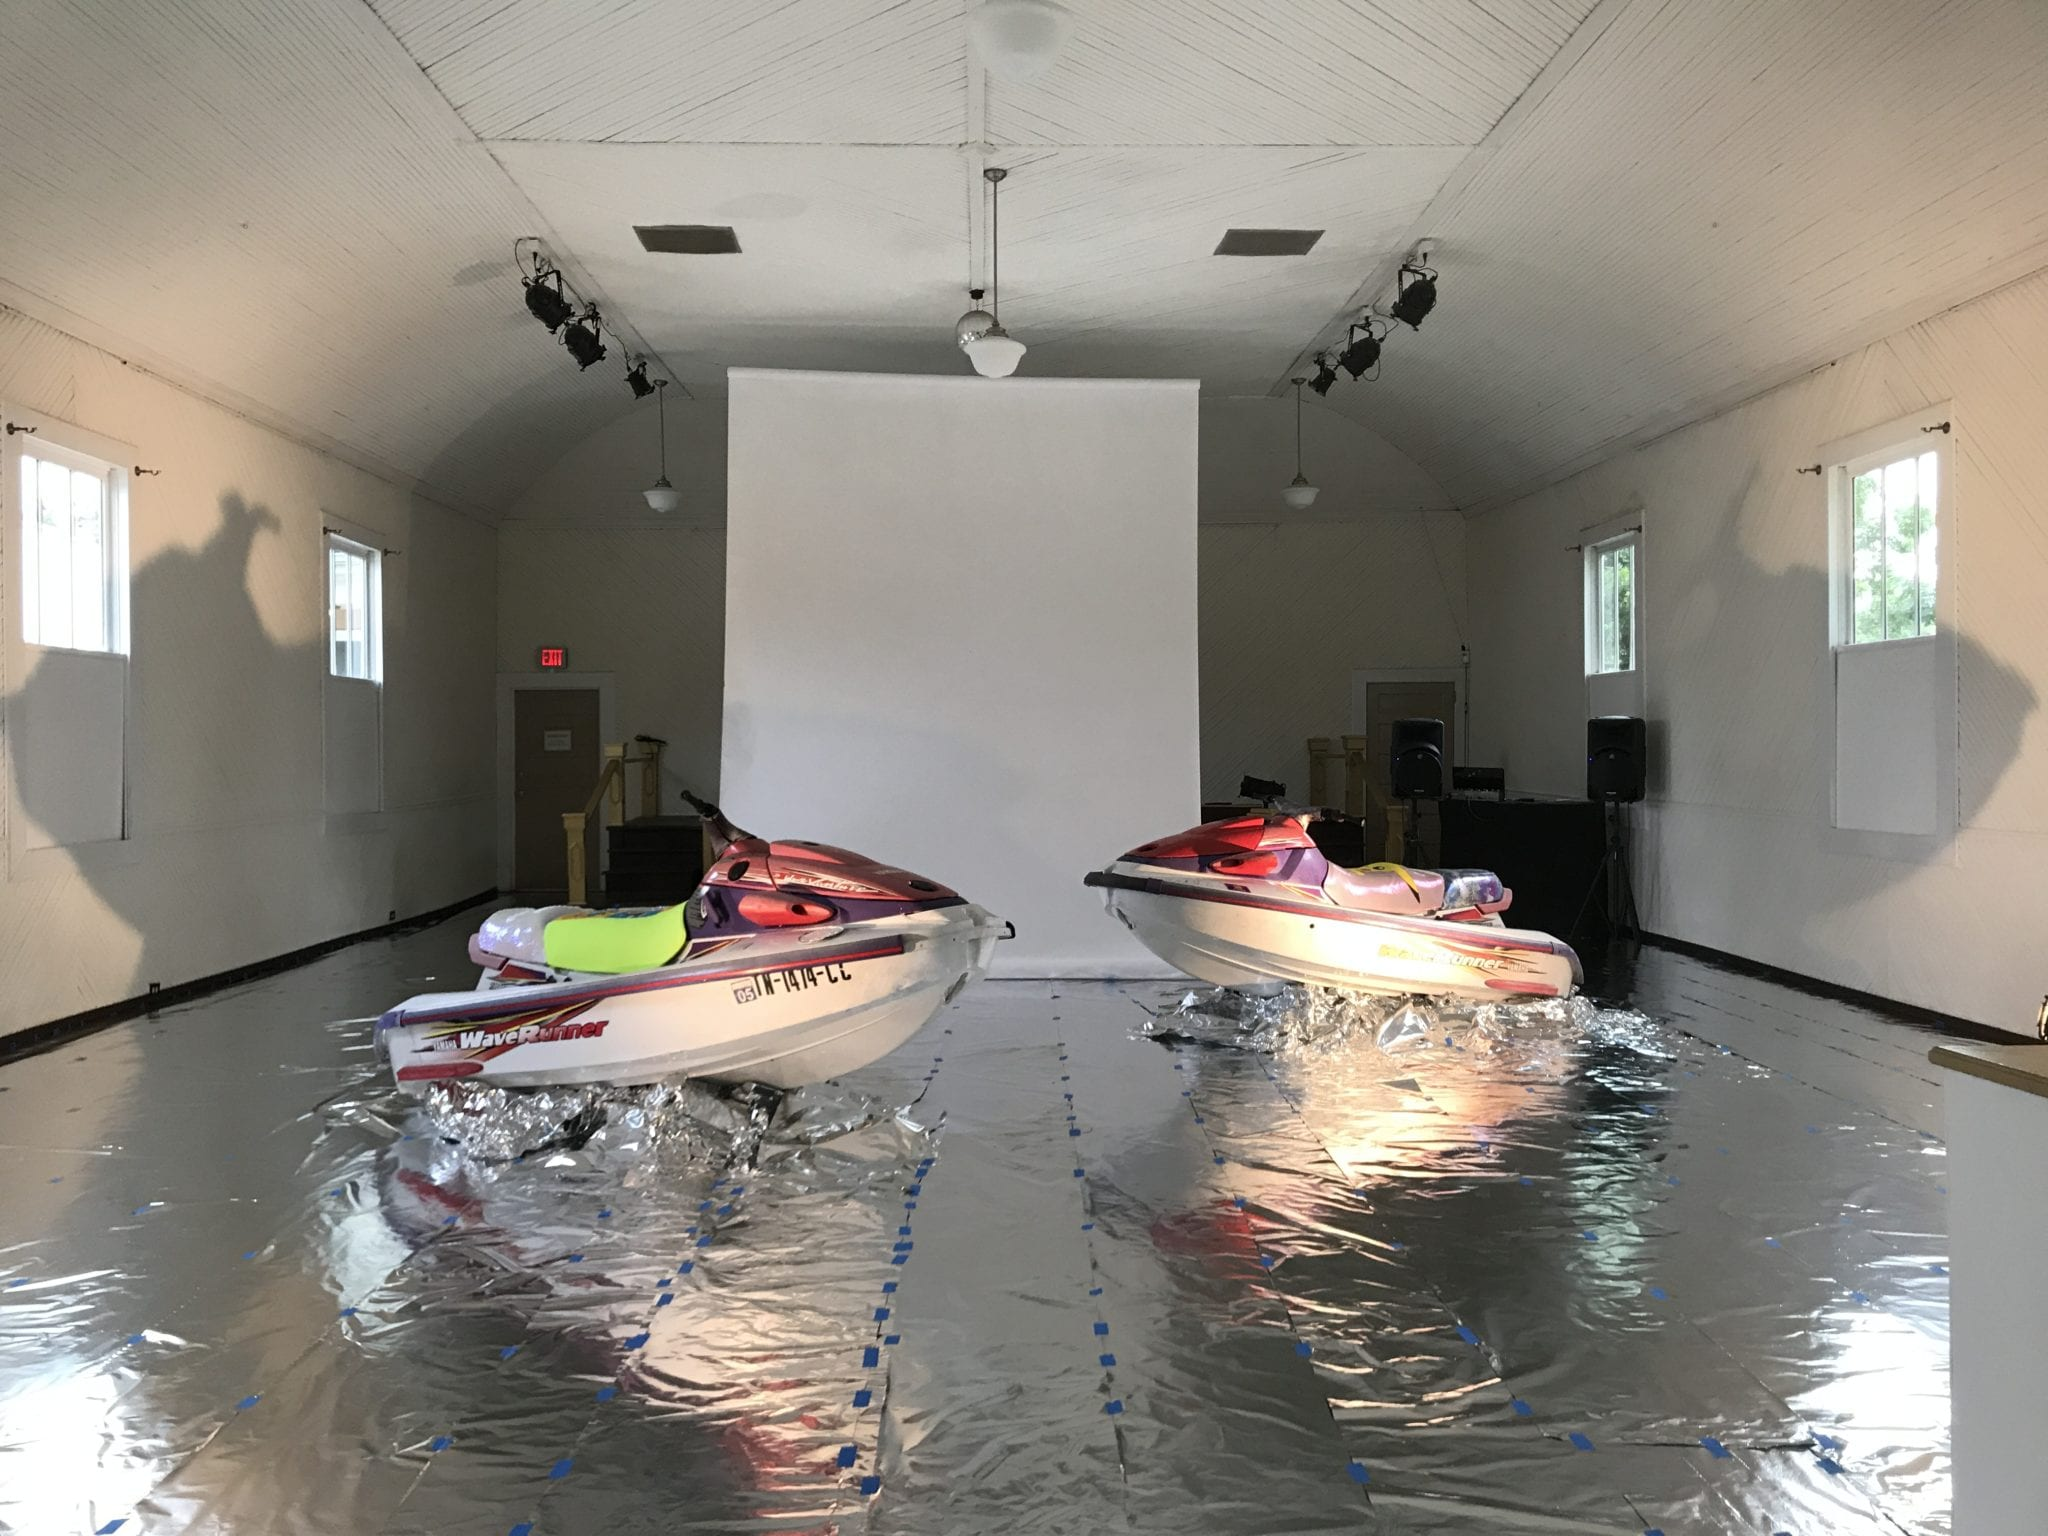 An abstract gallery view of work consisting of two jet skis